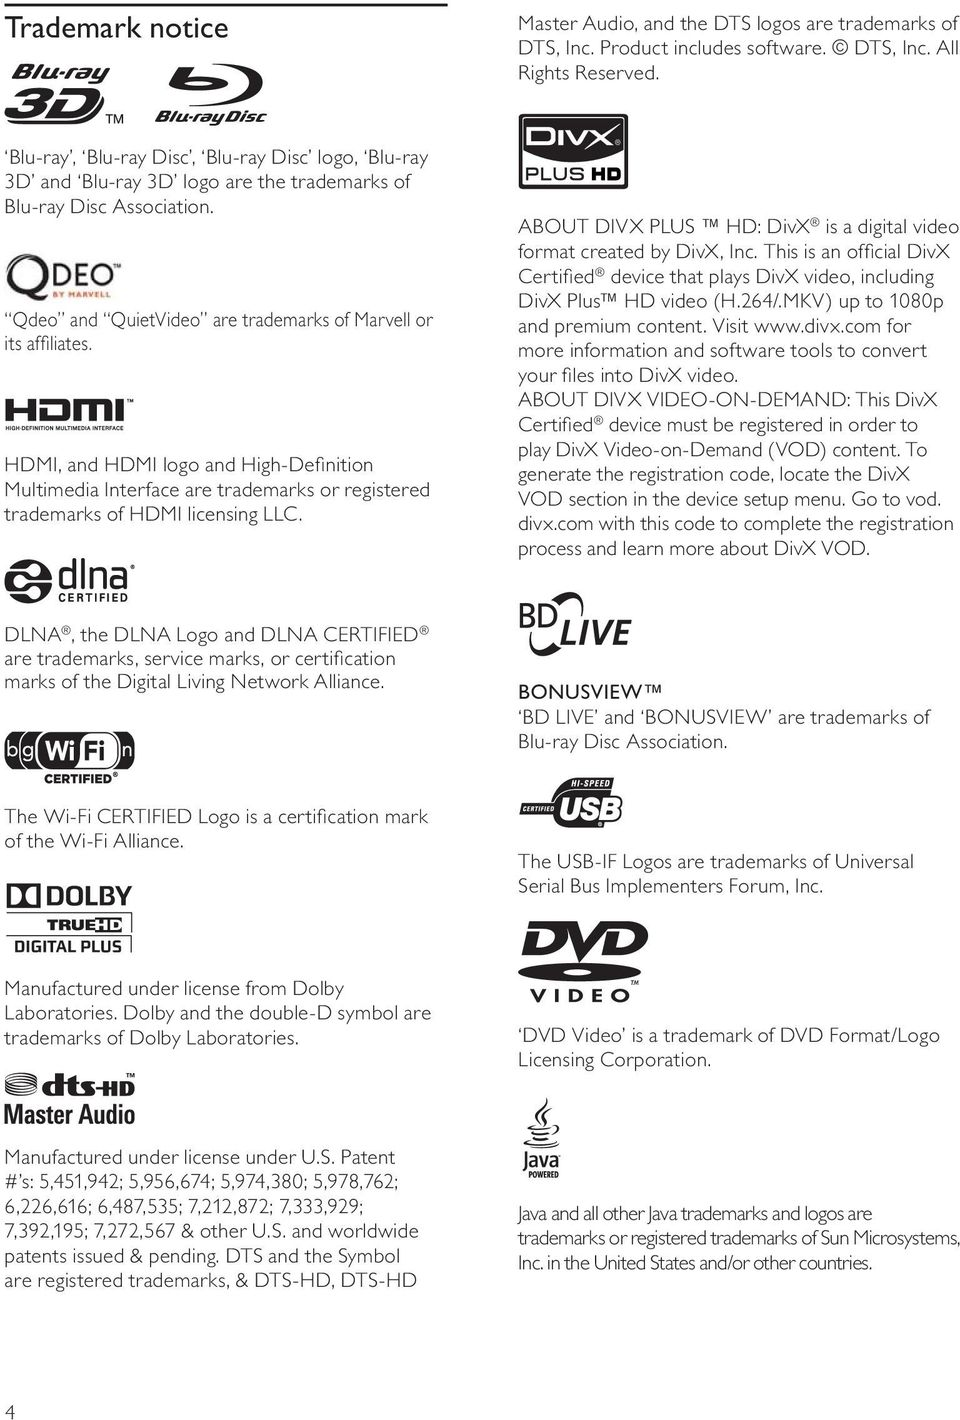 HDMI, and HDMI logo and High-Definition Multimedia Interface are trademarks or registered trademarks of HDMI licensing LLC. ABOUT DIVX US HD: DivX is a digital video format created by DivX, Inc.